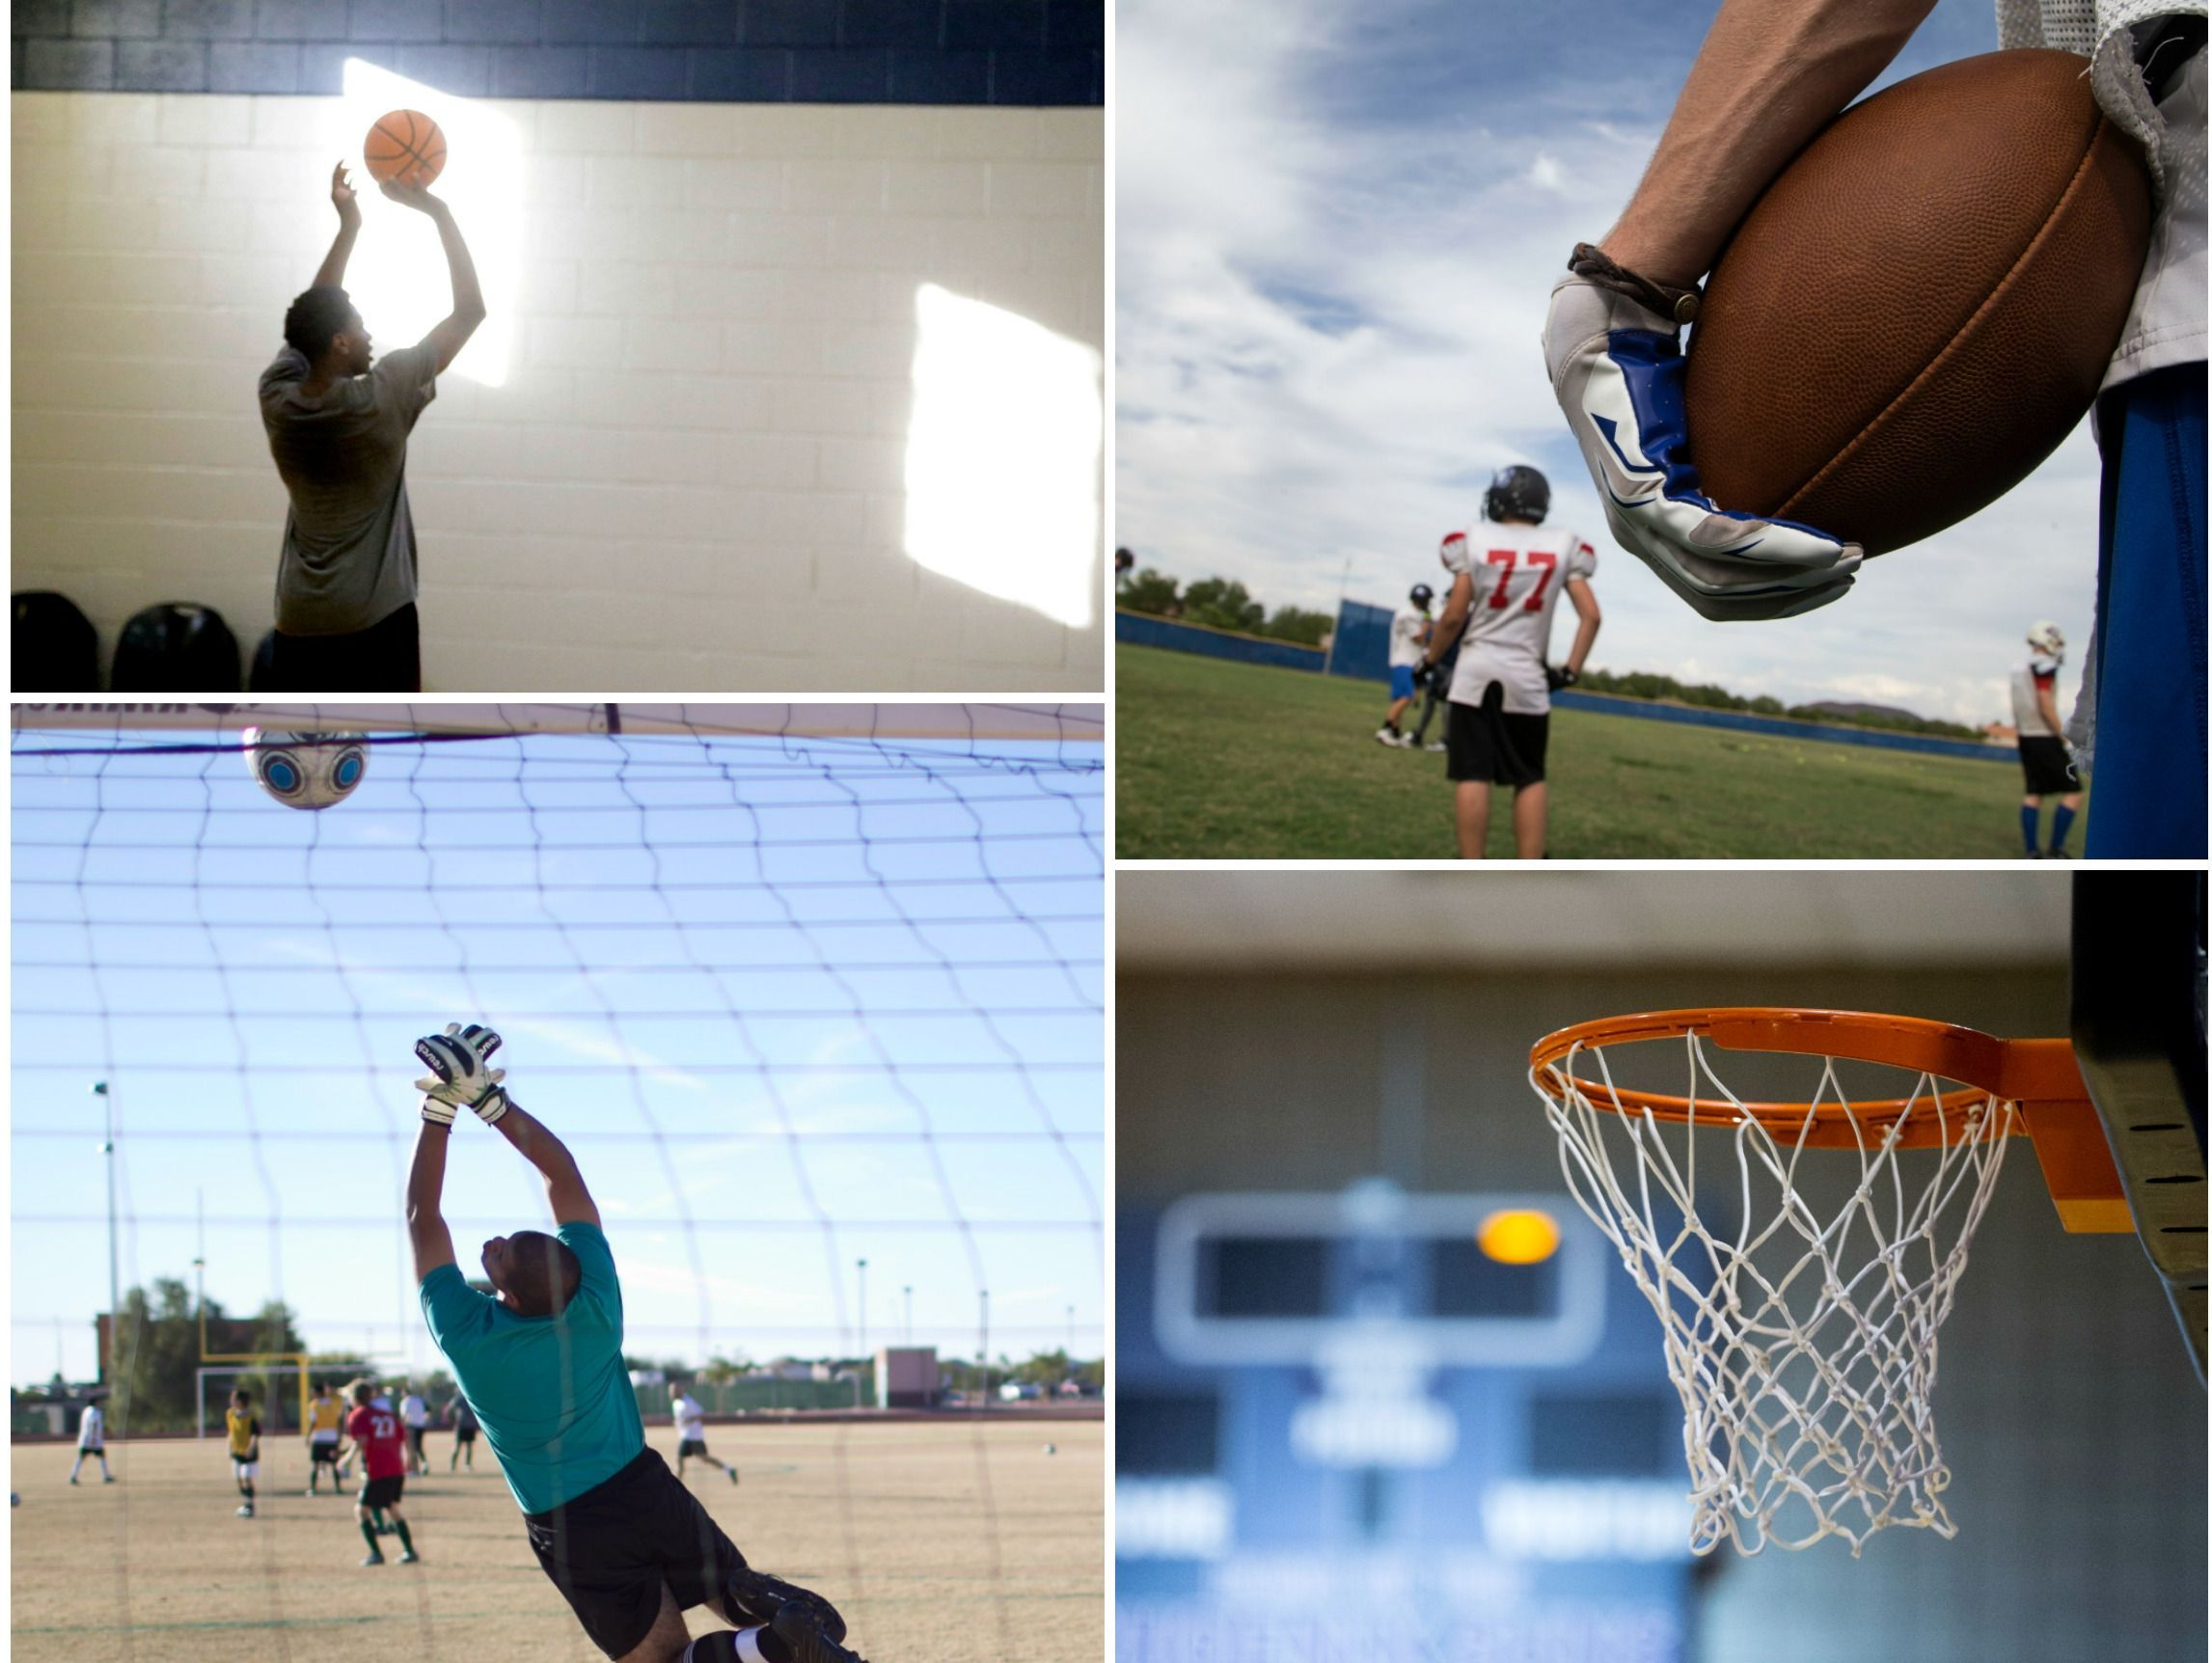 The Arizona Interscholastic Association's legislative council voted on Friday, March, 3 2017, to allow year-round practice for high school sports teams.